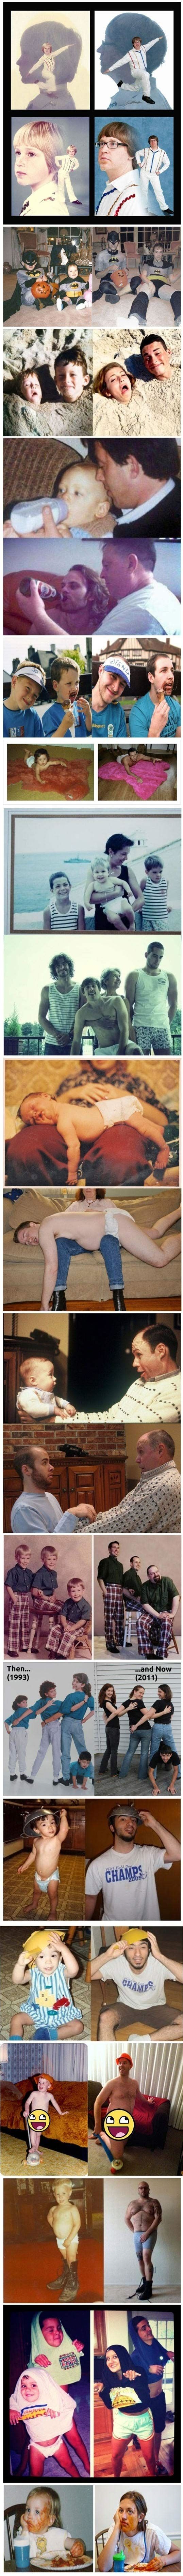 Recreating Childhood Photos (Updated)